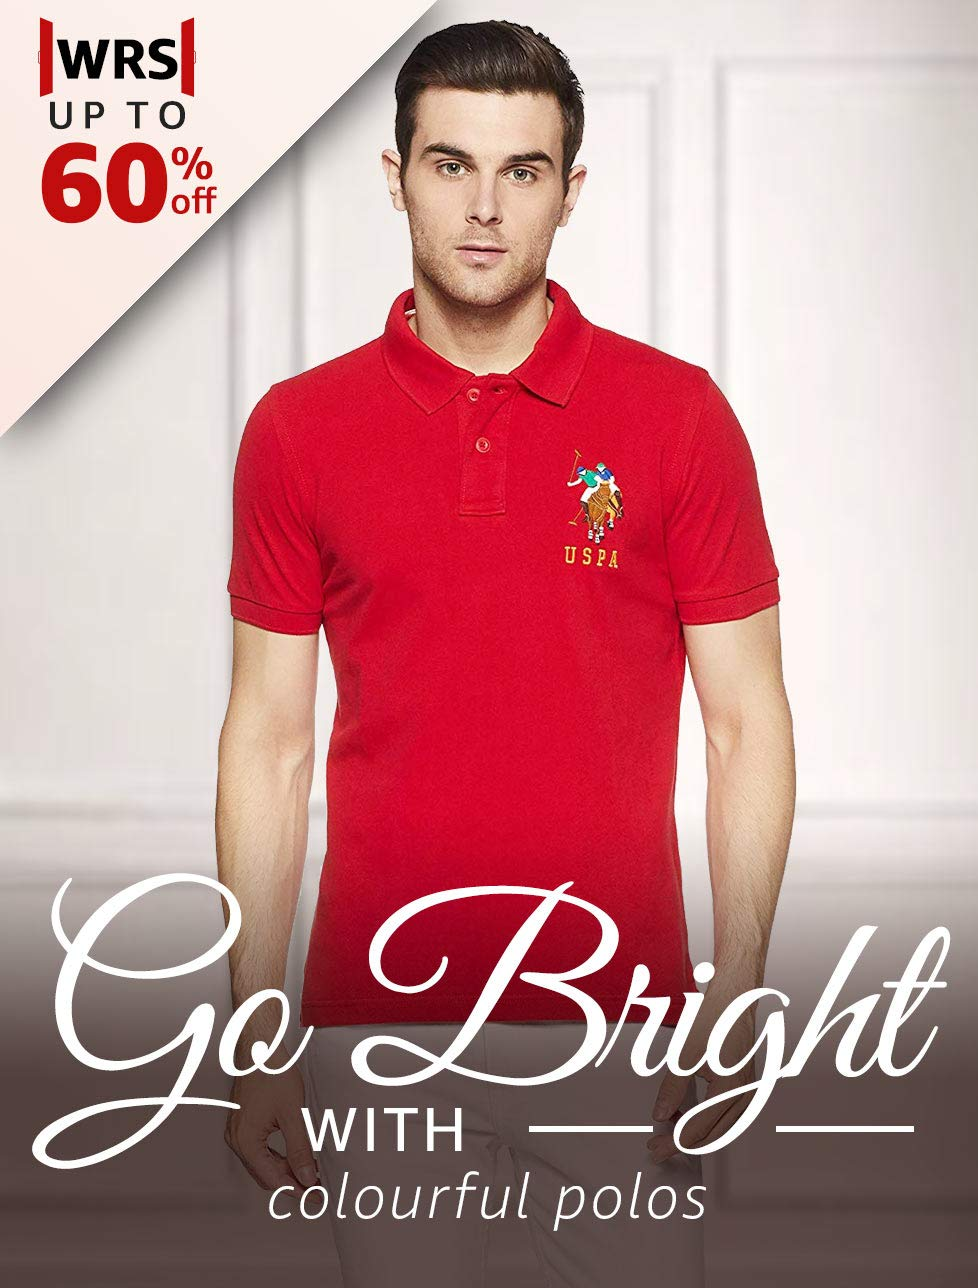 Go bright with colourful polos